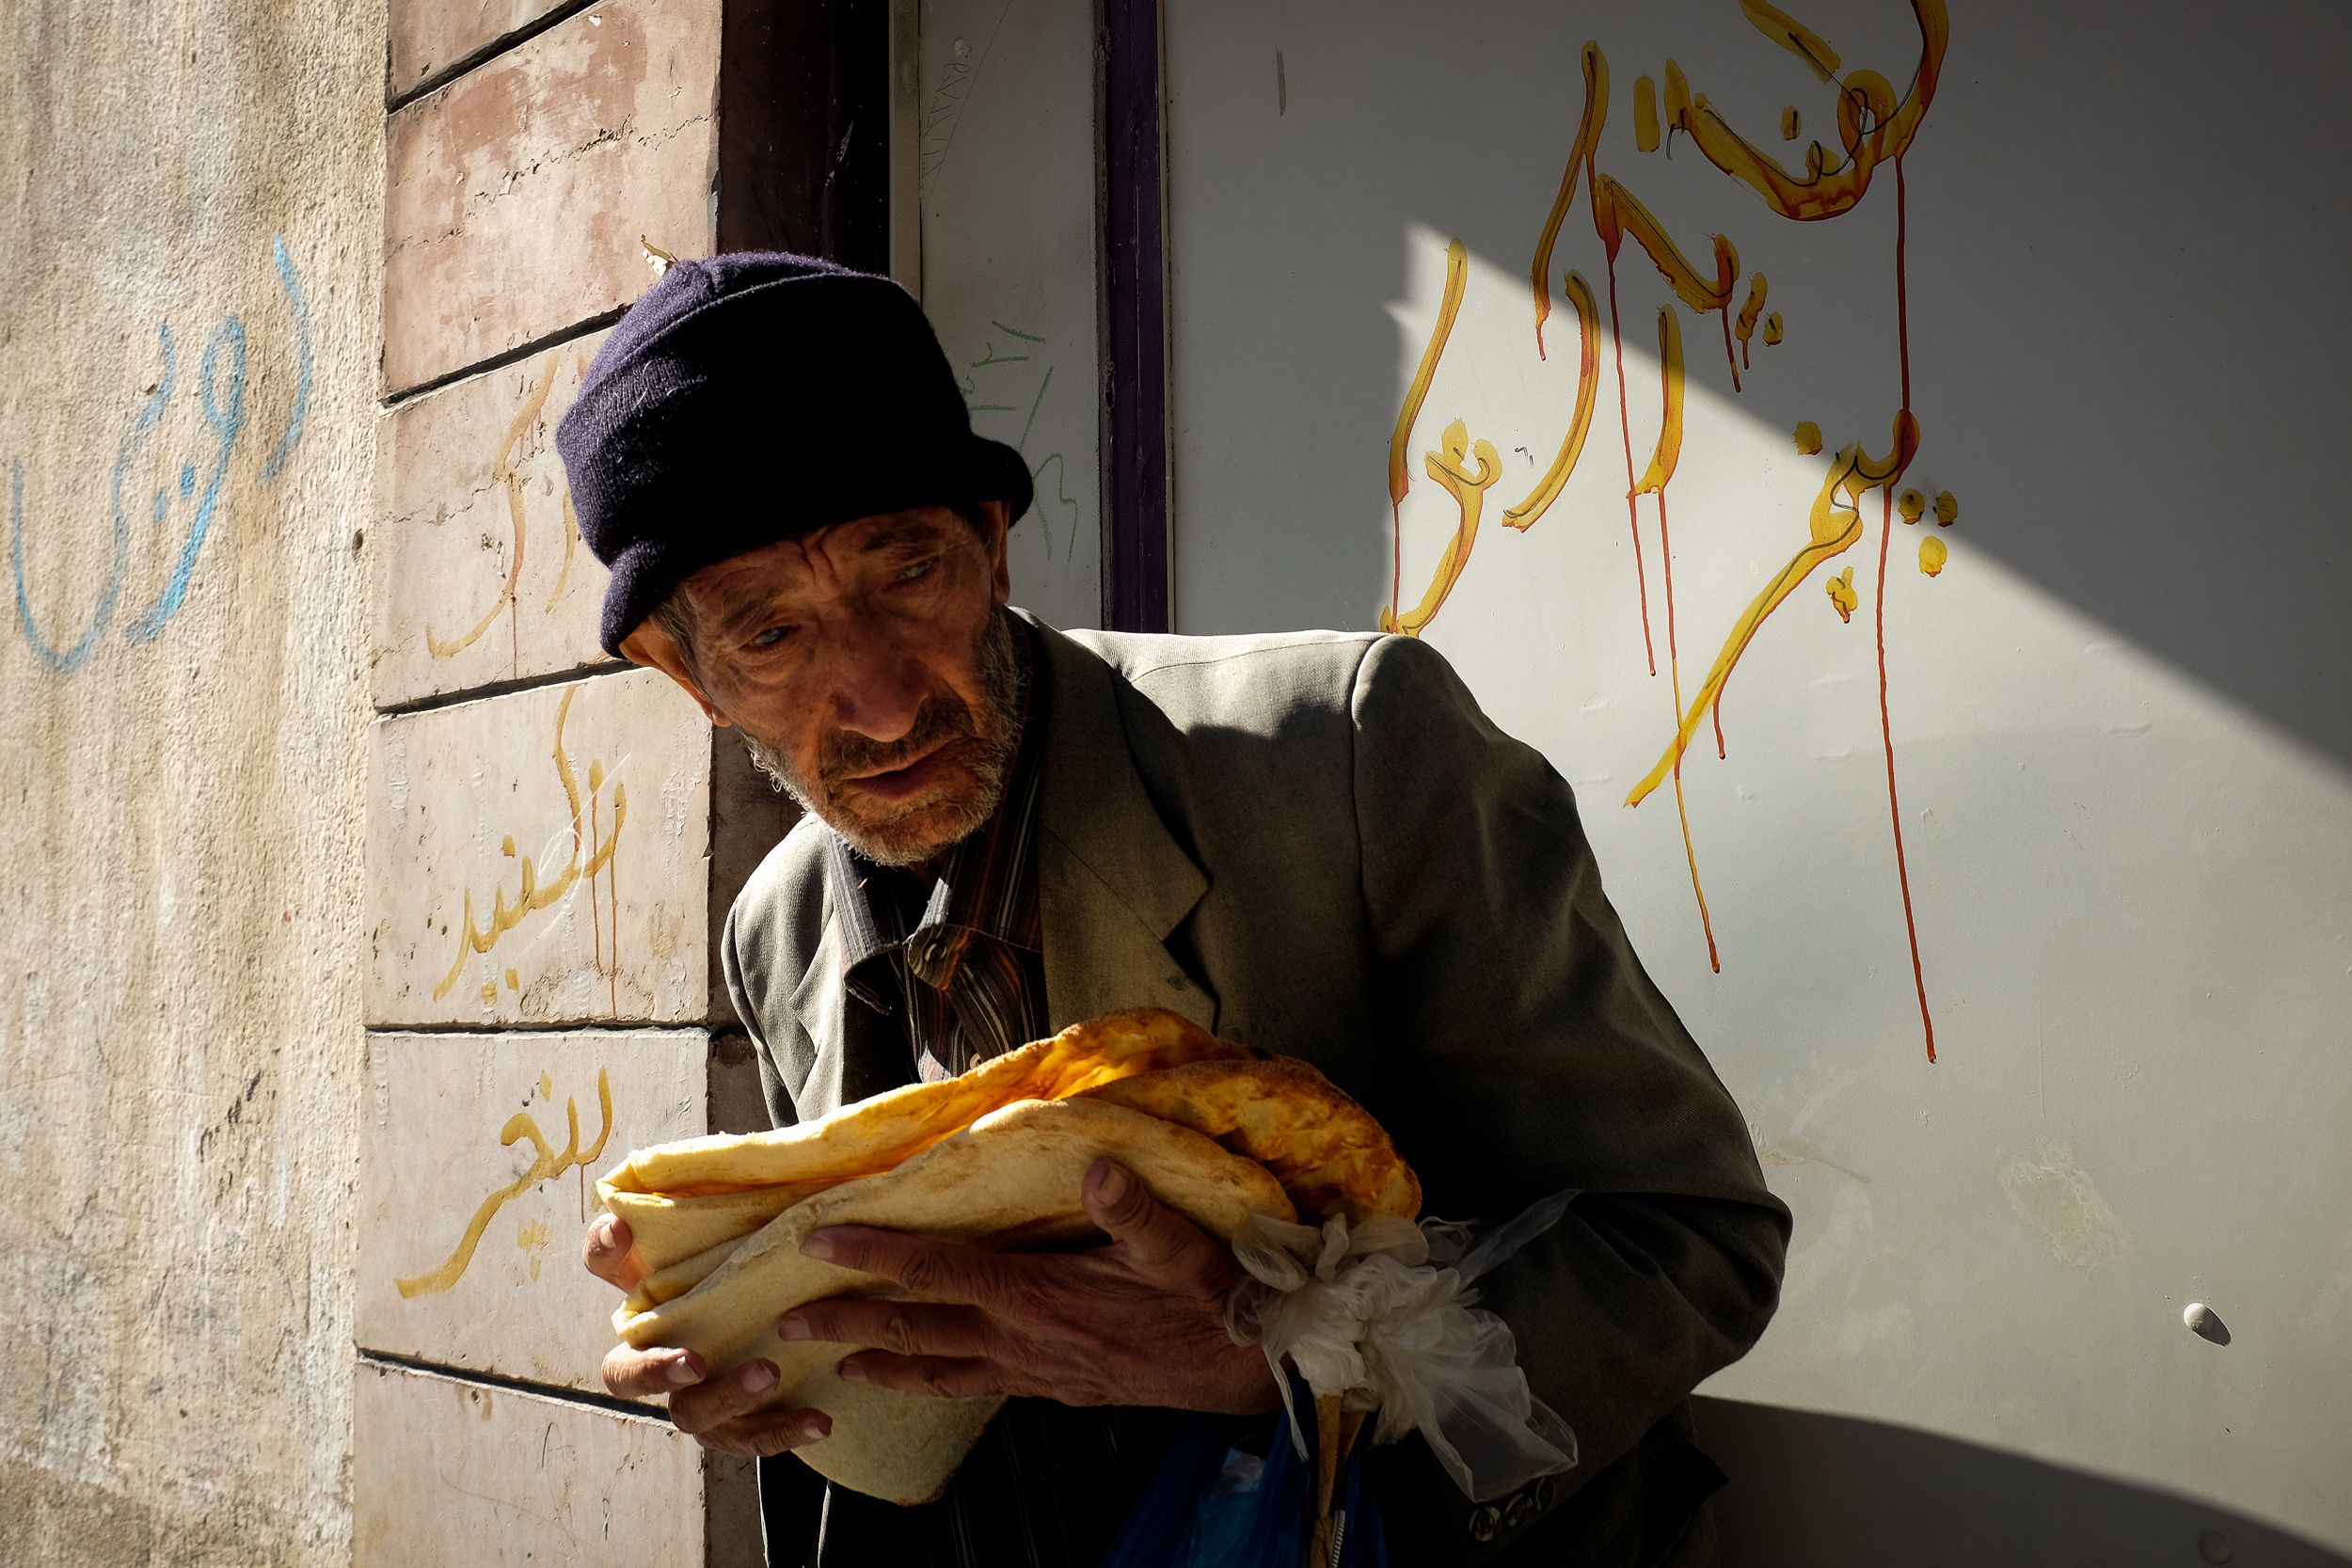 An elderly man clings to his bread in the back alleys of Shiraz.